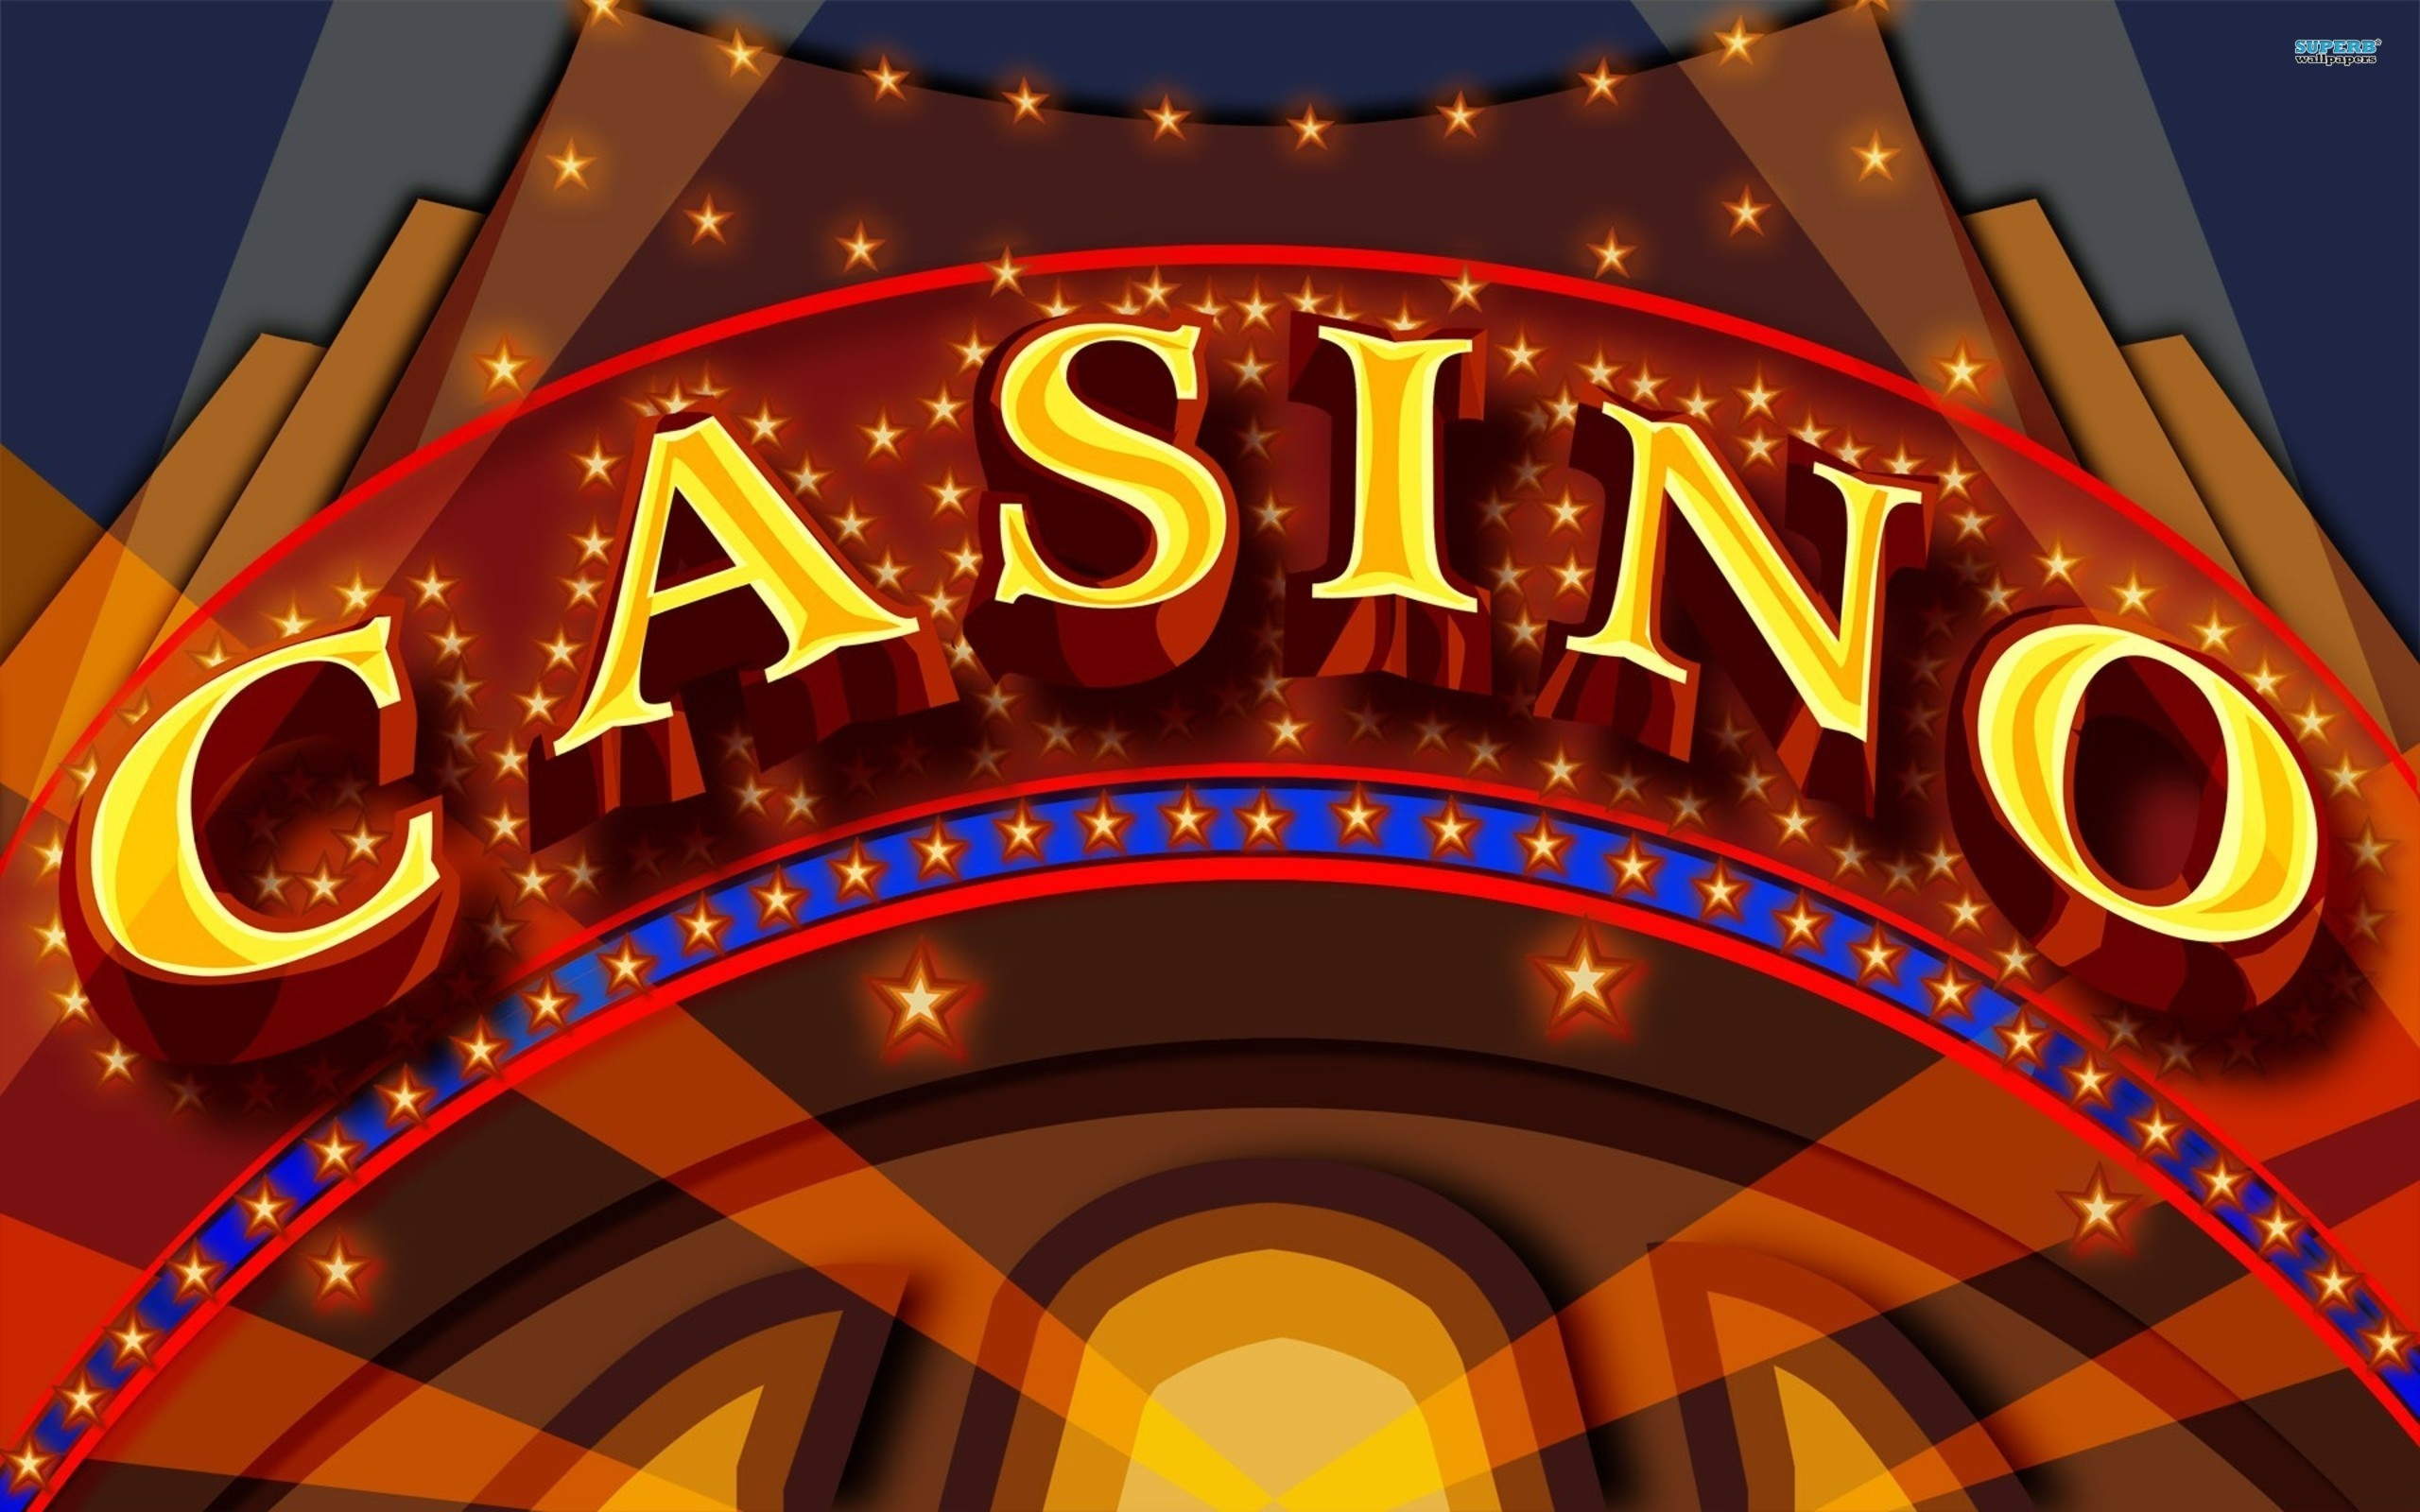 Also casino directory game link linkpartners.com please suggest airport casino hotel philippine